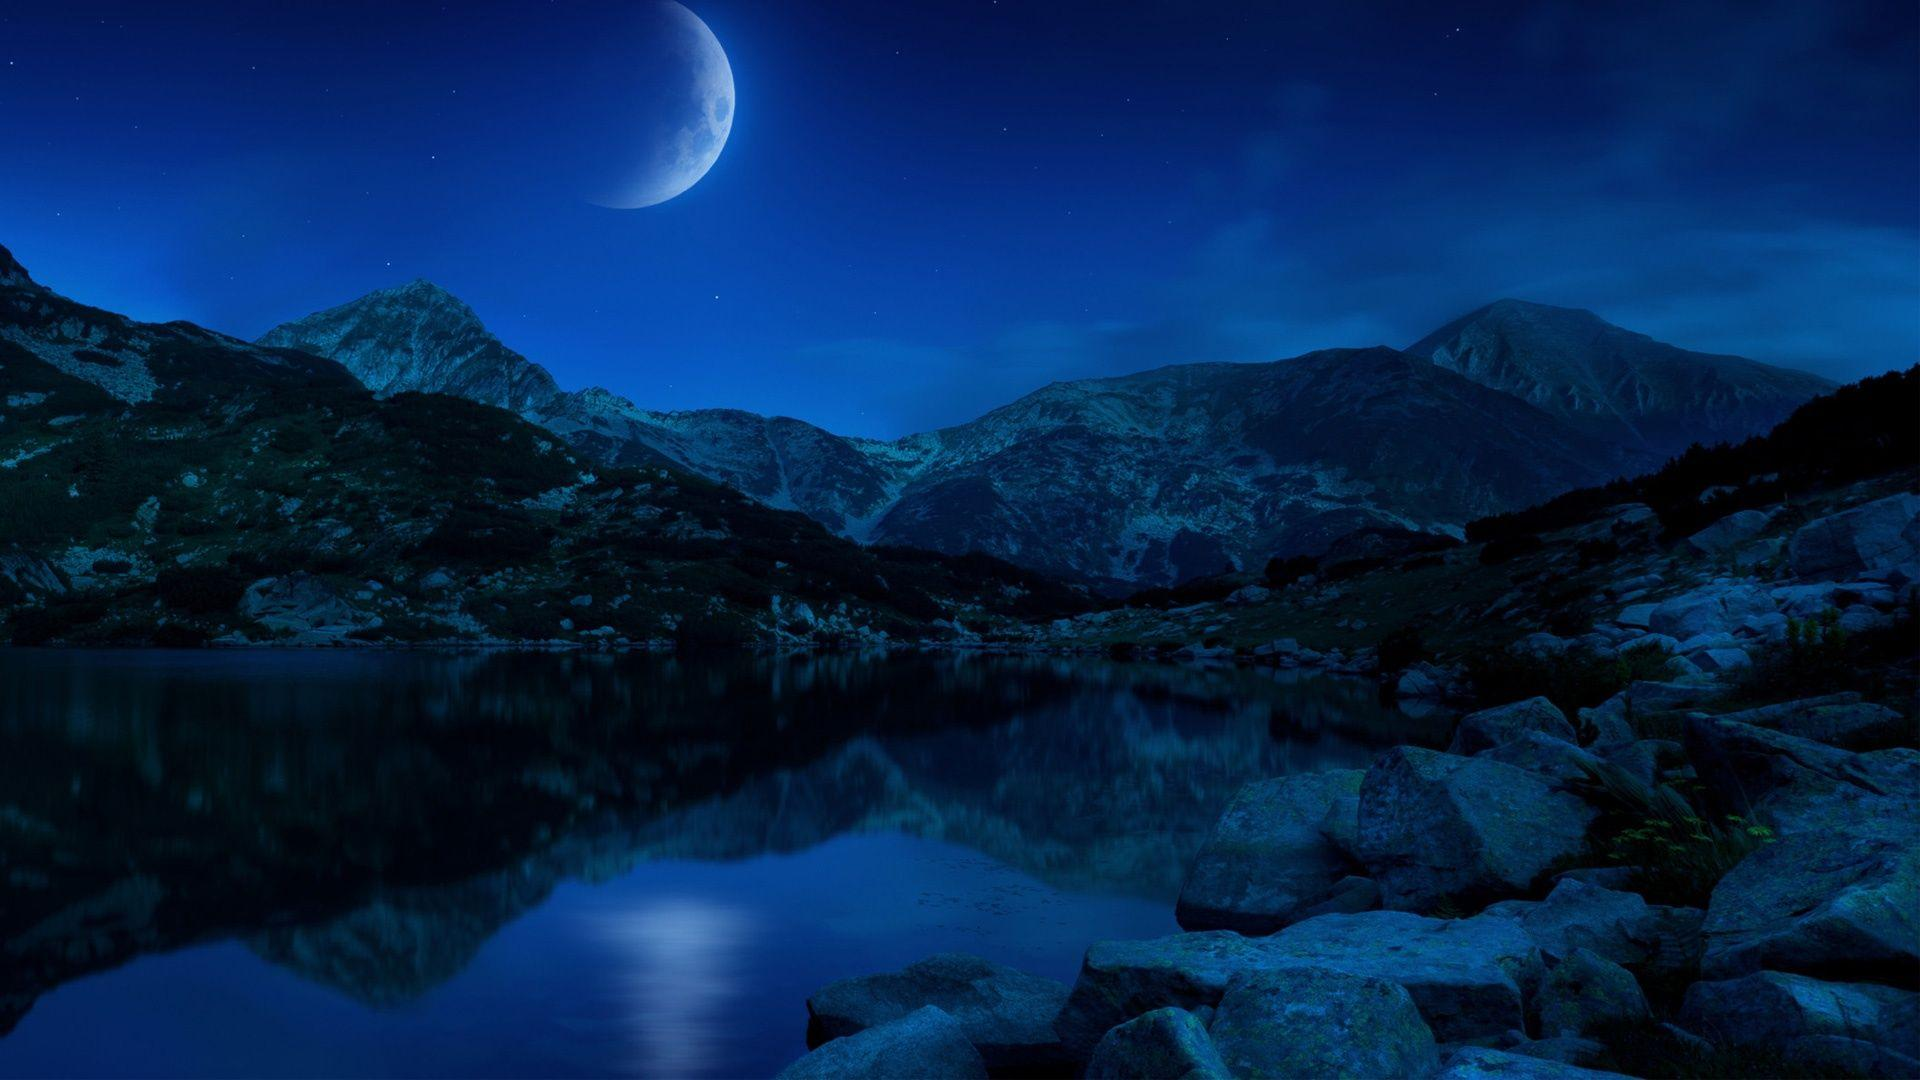 Night Half Moon Mountains Lake Bulgaria Wallpapers in jpg format for ...